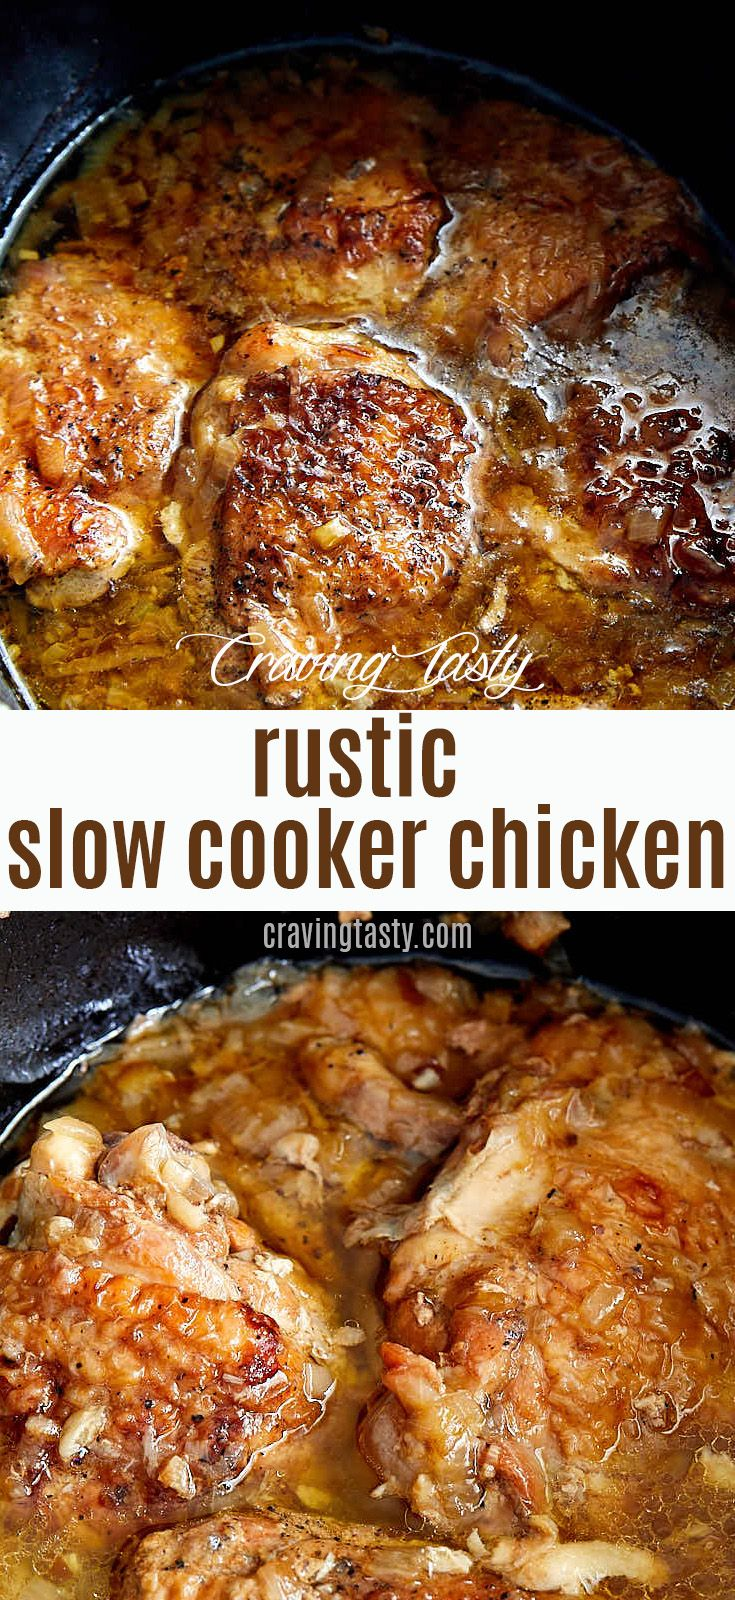 Best slow cooker chicken - delicious, melt-in-your-mouth tender and succulent. | cravingtasty.com #chicken #slowcookerchicken #slowcookerchicken